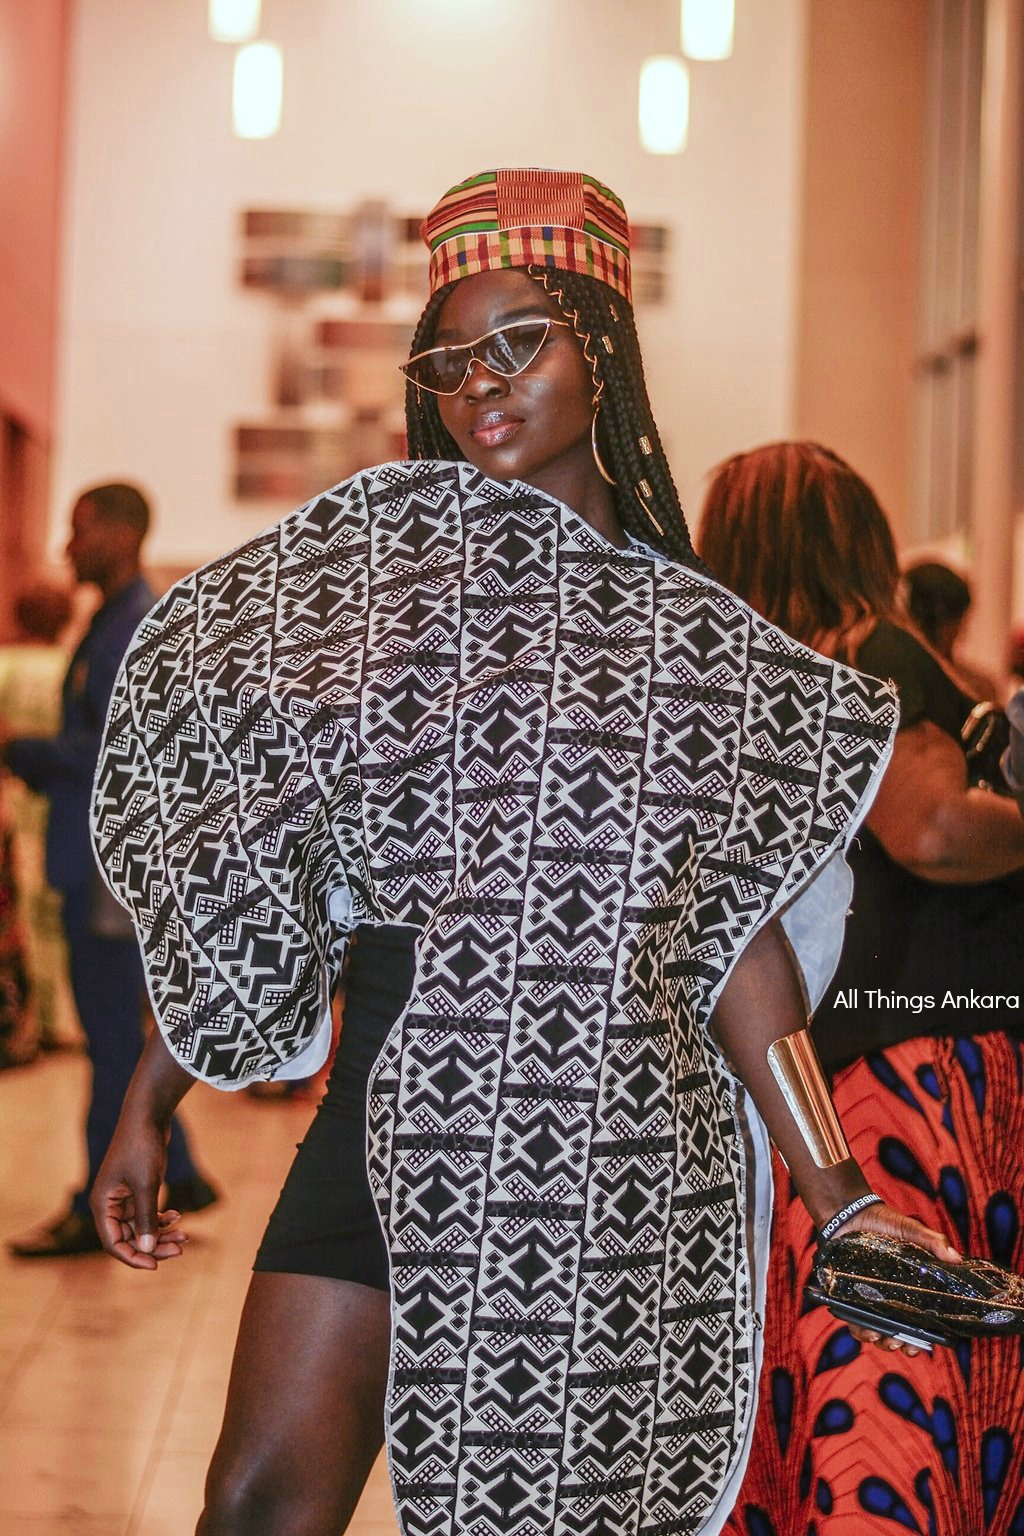 Gala All Things Ankara's Best Dressed Women at Africa Gives Back International Gala 2018 2